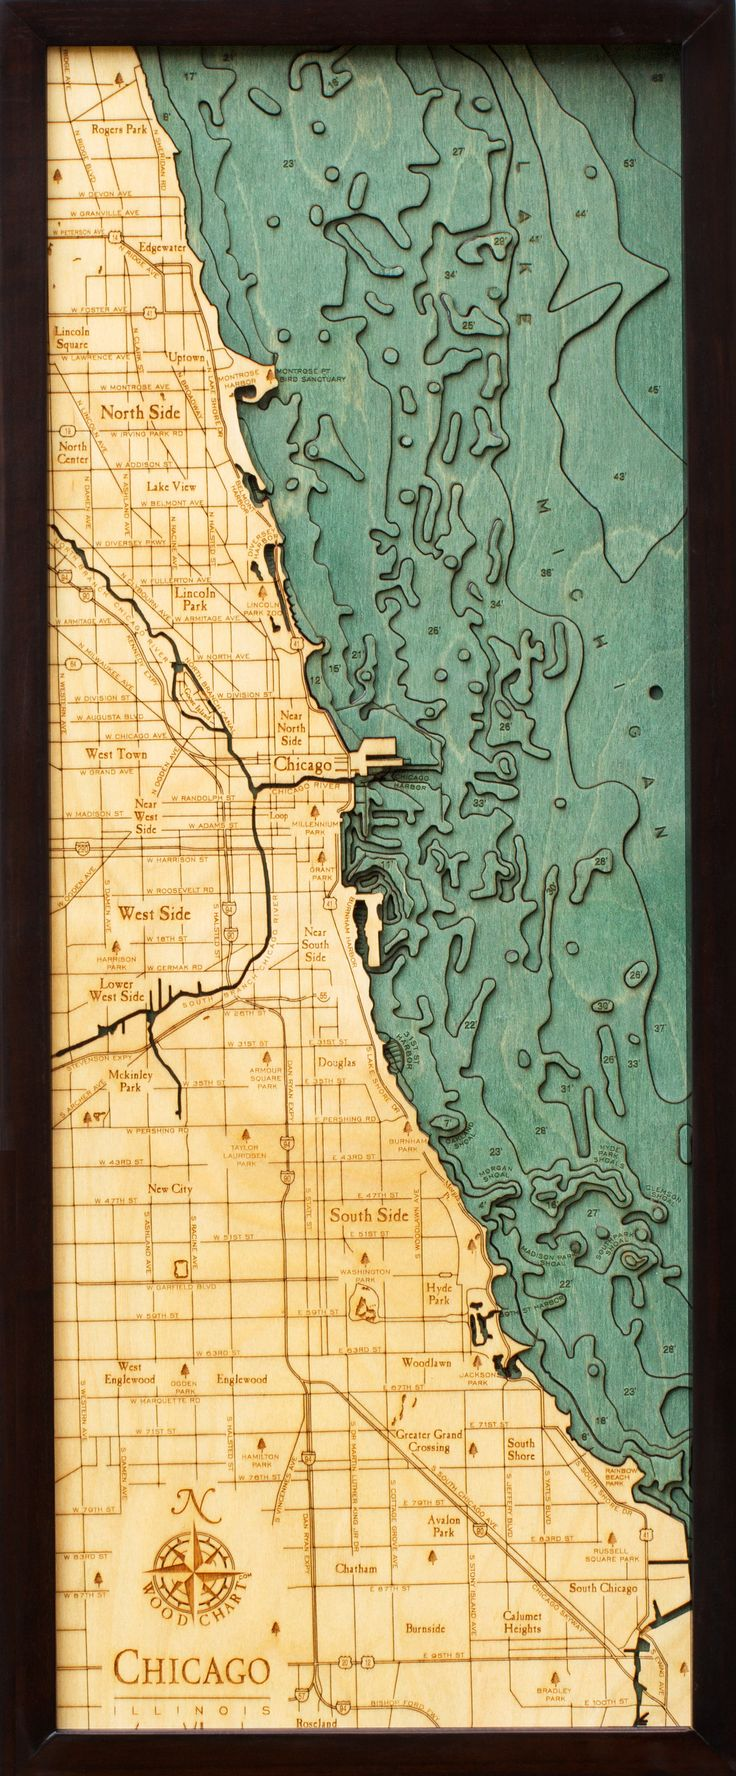 Chicago Map With Neighborhood Names%0A An heirloomquality  lasercut topographical map of Chicago made of Baltic  birch and stained by hand  This chart is x